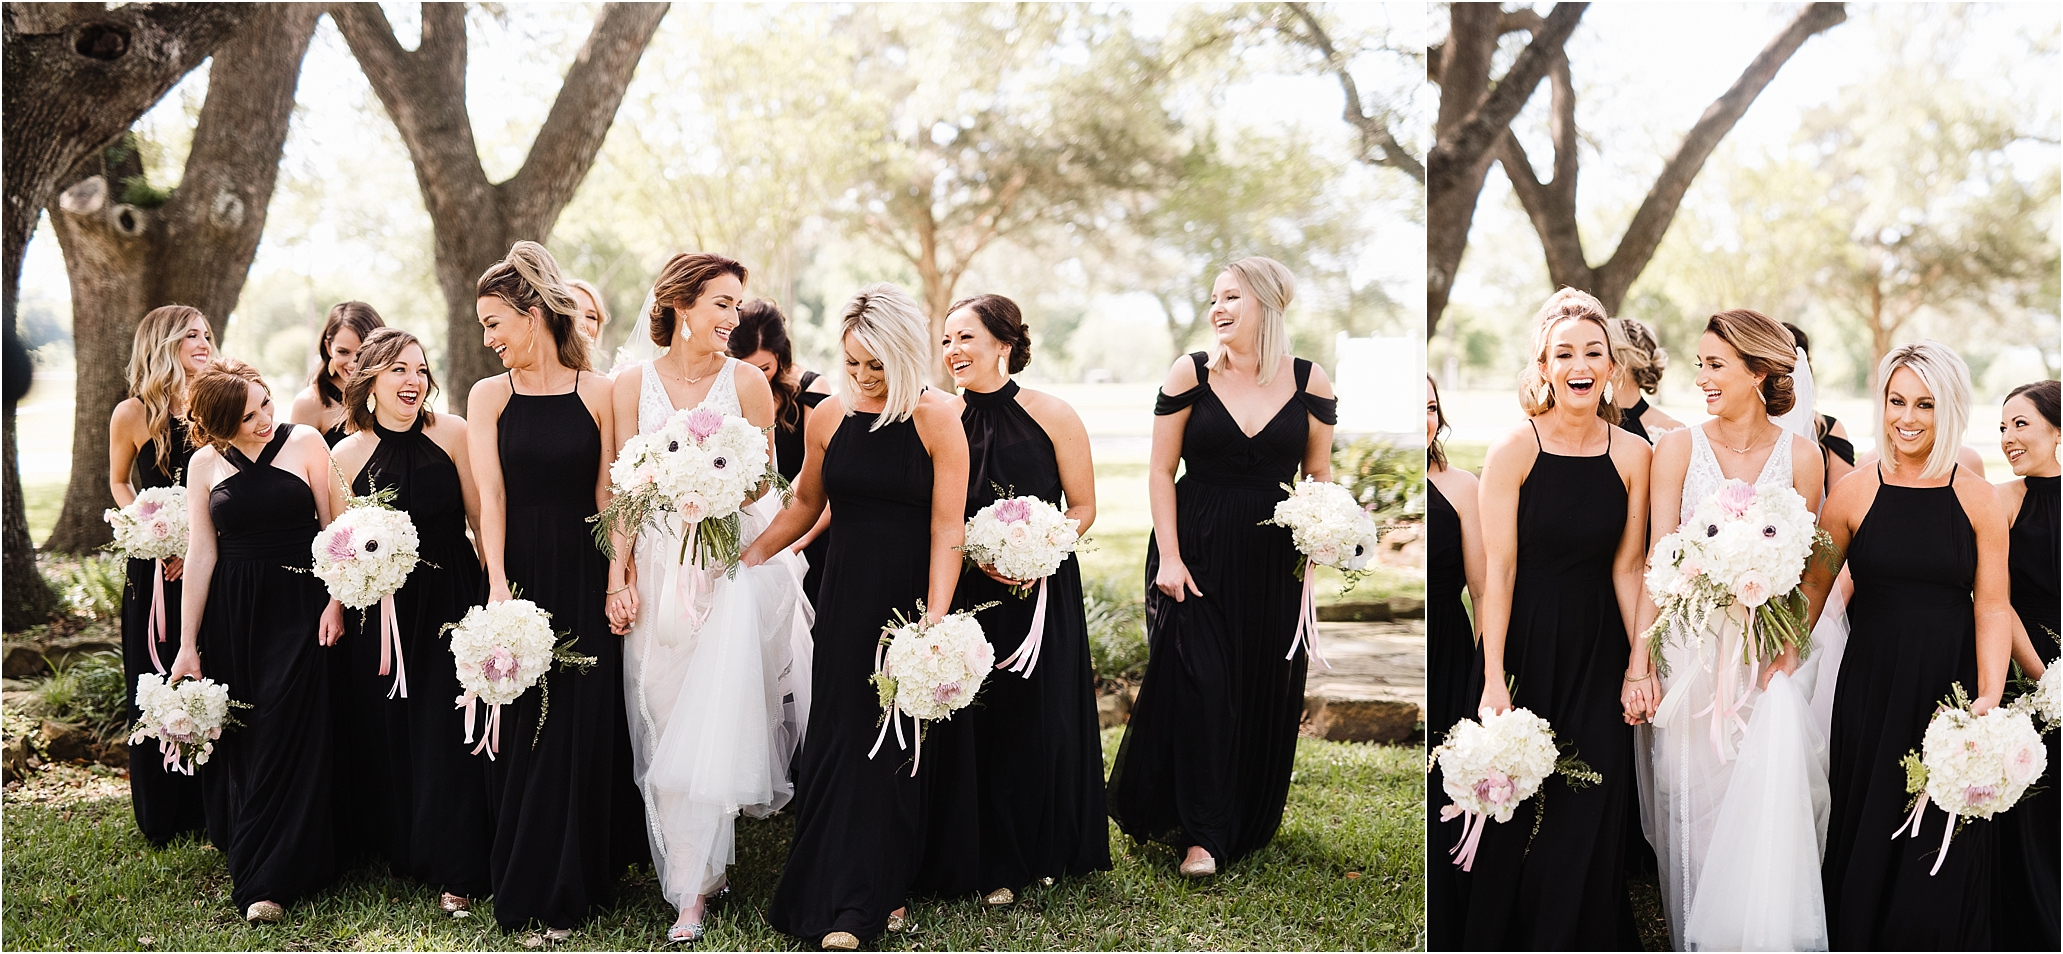 PattisonHouse_TexasWeddingPhotographer_CarlyCrockett&MattBrownWedding_0082.jpg